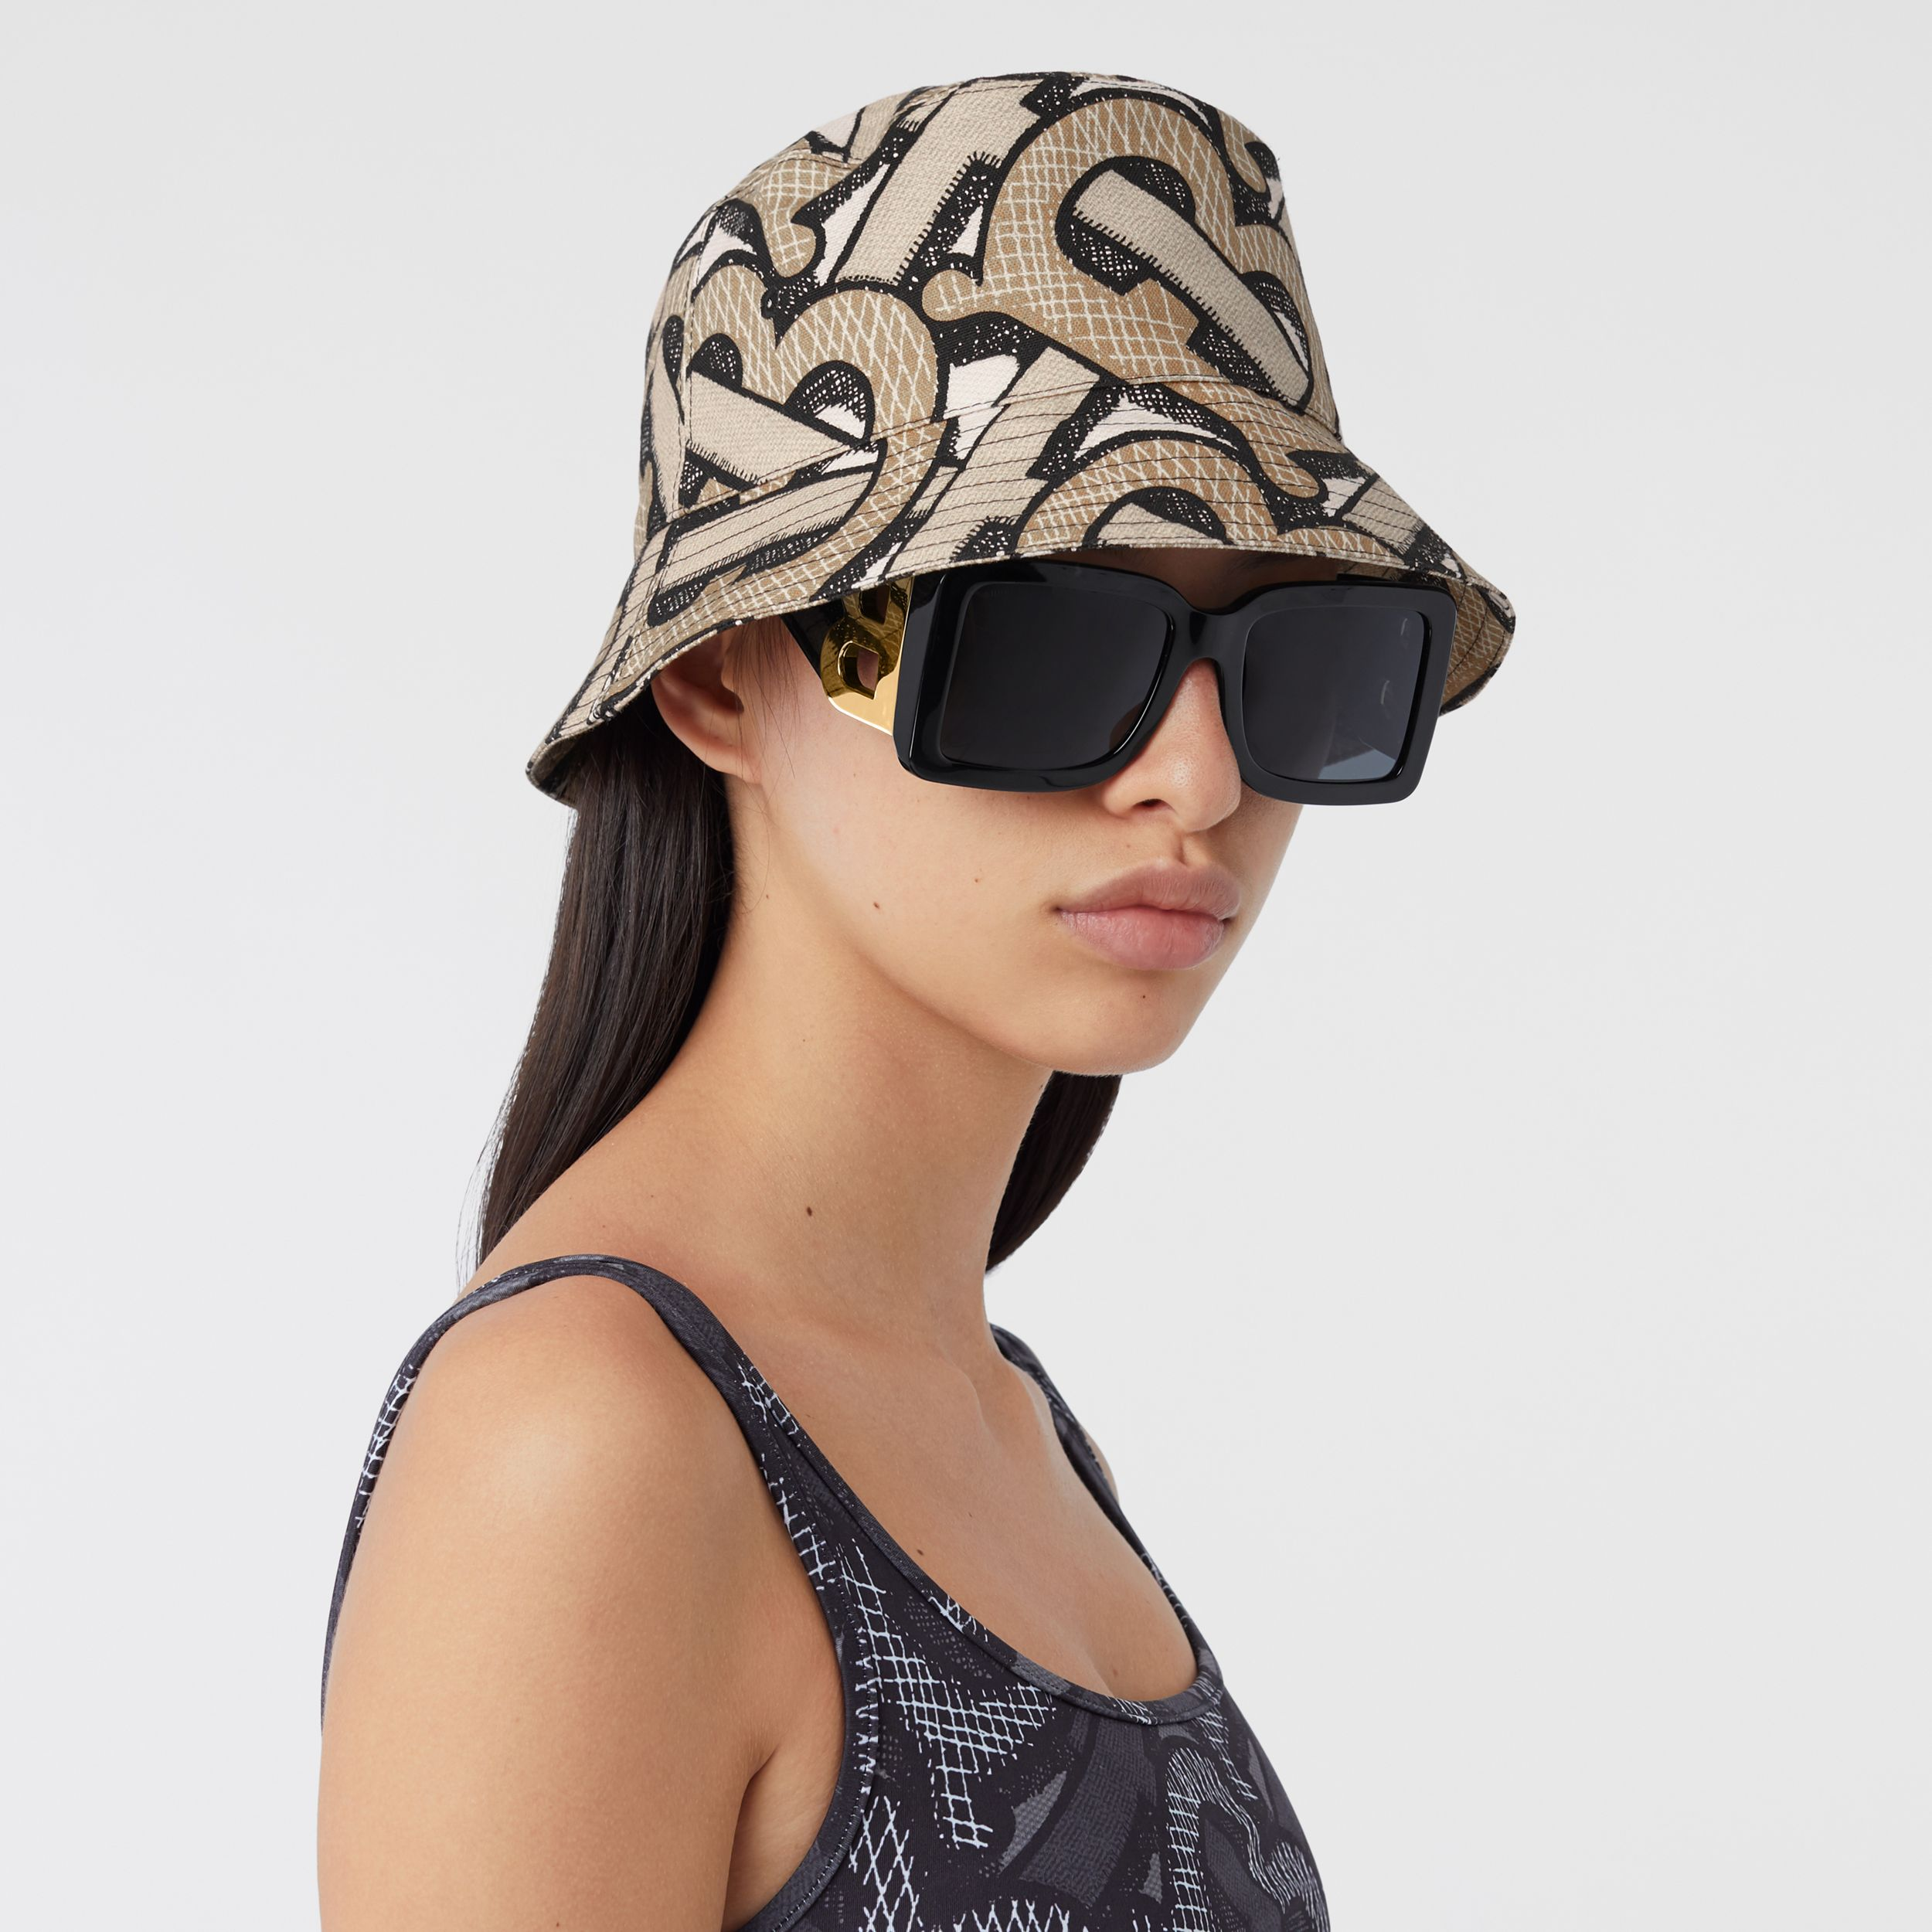 Monogram Print Cotton Canvas Bucket Hat in Dark Beige | Burberry Hong Kong S.A.R. - 3